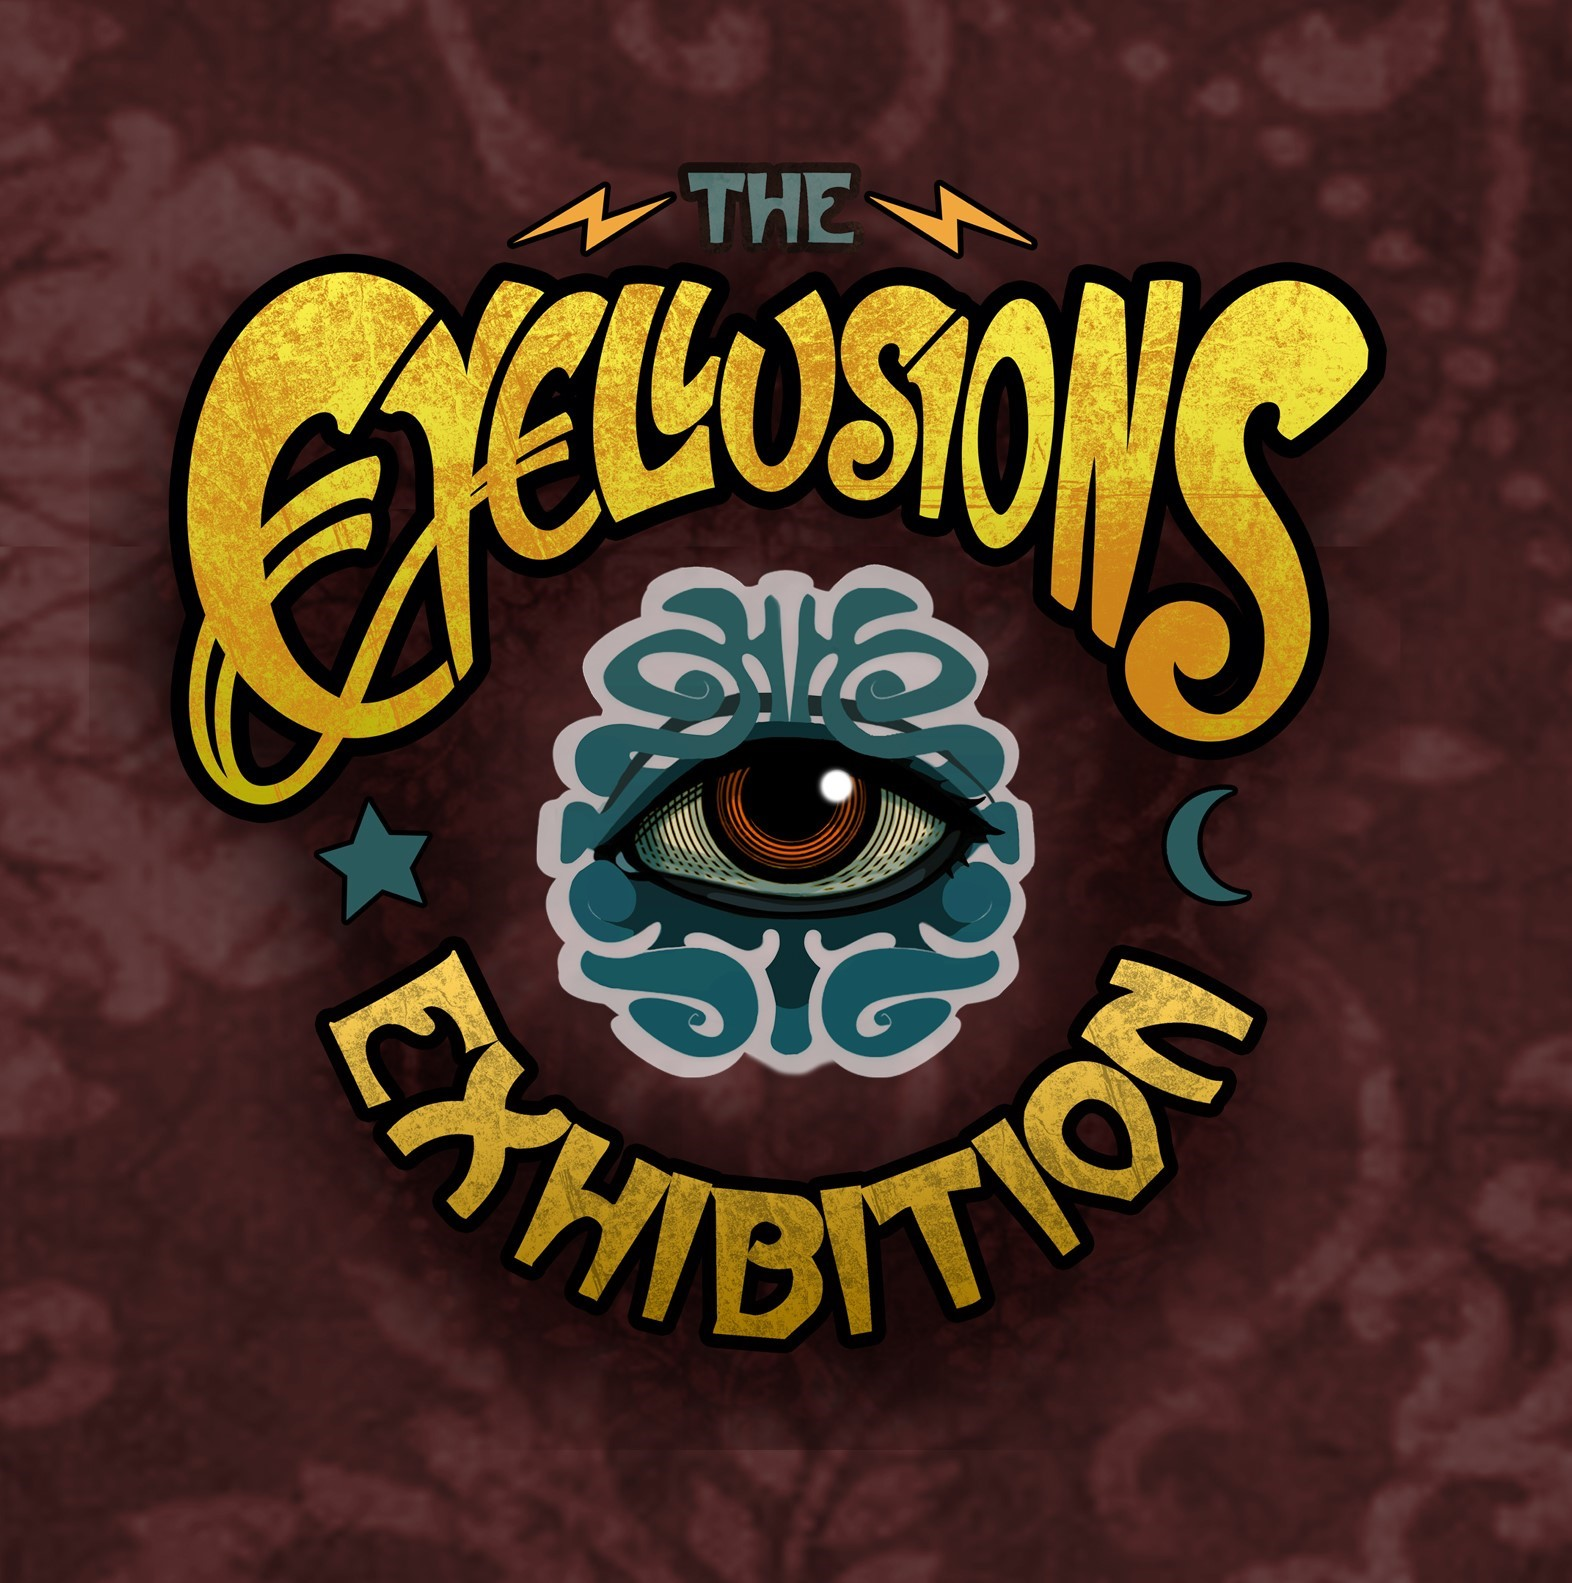 eyellusions exhibition